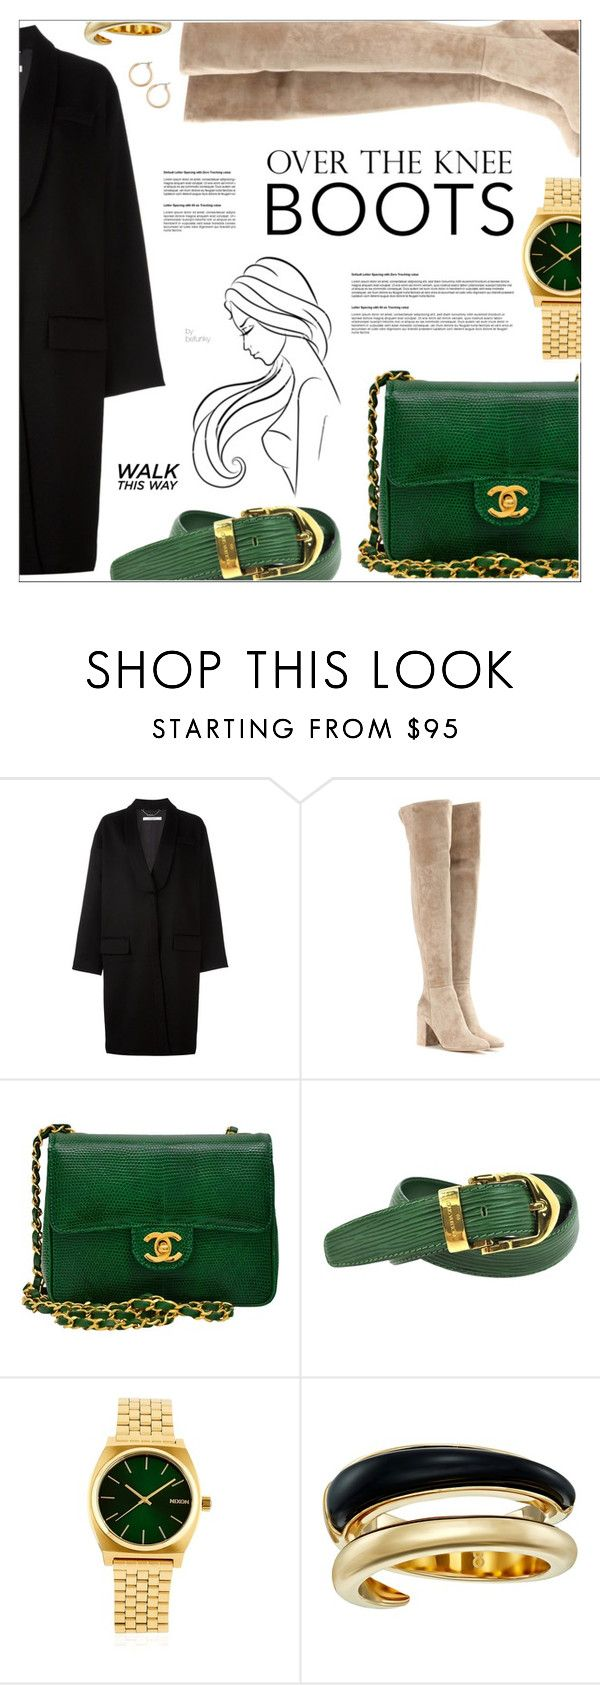 """""""Fall Footwear: Over-The-Knee Boots #2"""" by befunky ❤ liked on Polyvore featuring Givenchy, Gianvito Rossi, Chanel, Louis Vuitton, Nixon, Michael Kors, Nordstrom, Boots, polyvorecommunity and PolyvoreMostStylish"""